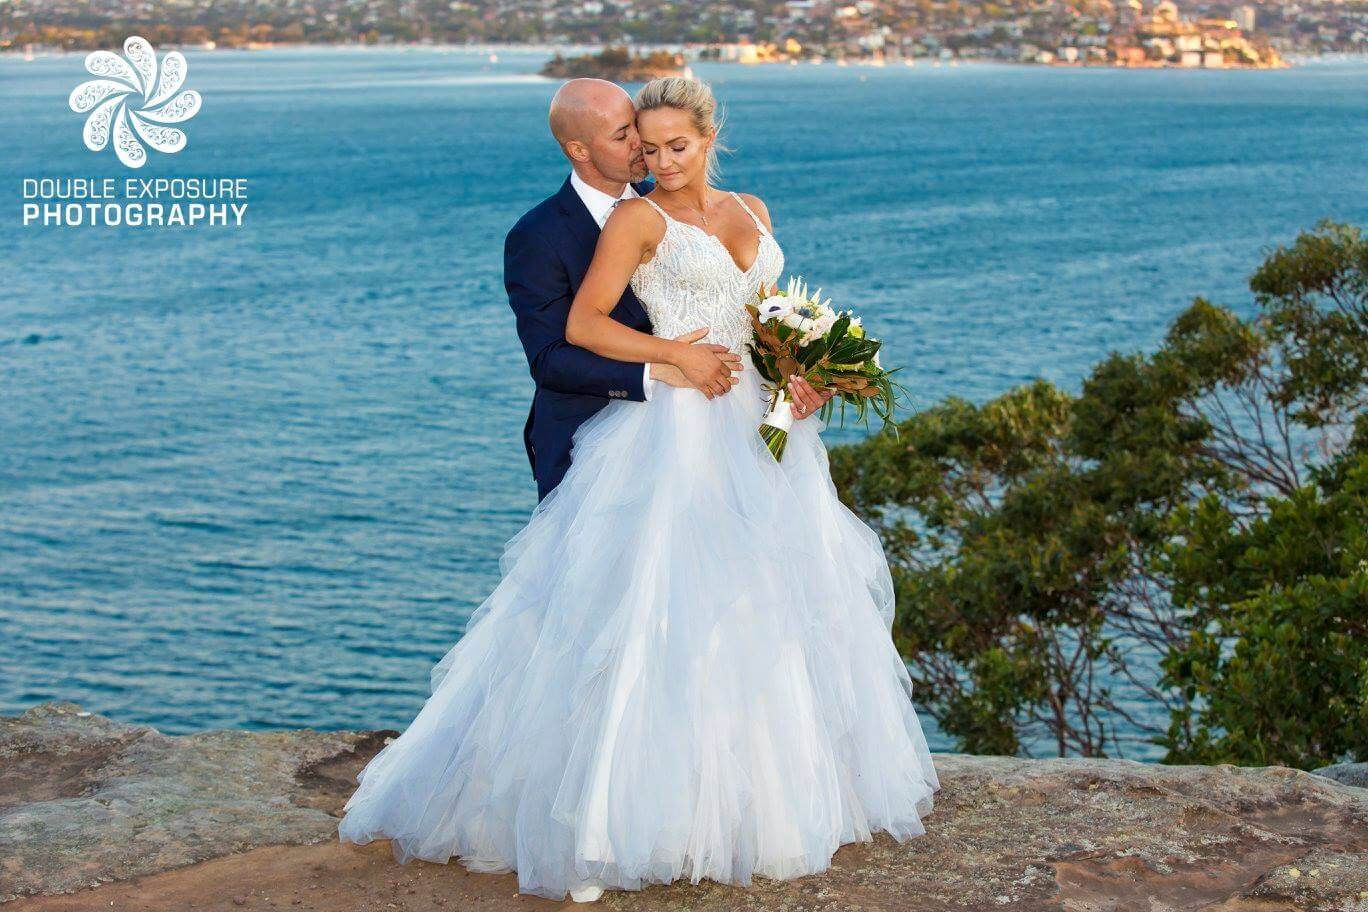 Allure Couture – Size 10 Ball Gown dress | Second hand wedding dresses Bankstown - Size 10